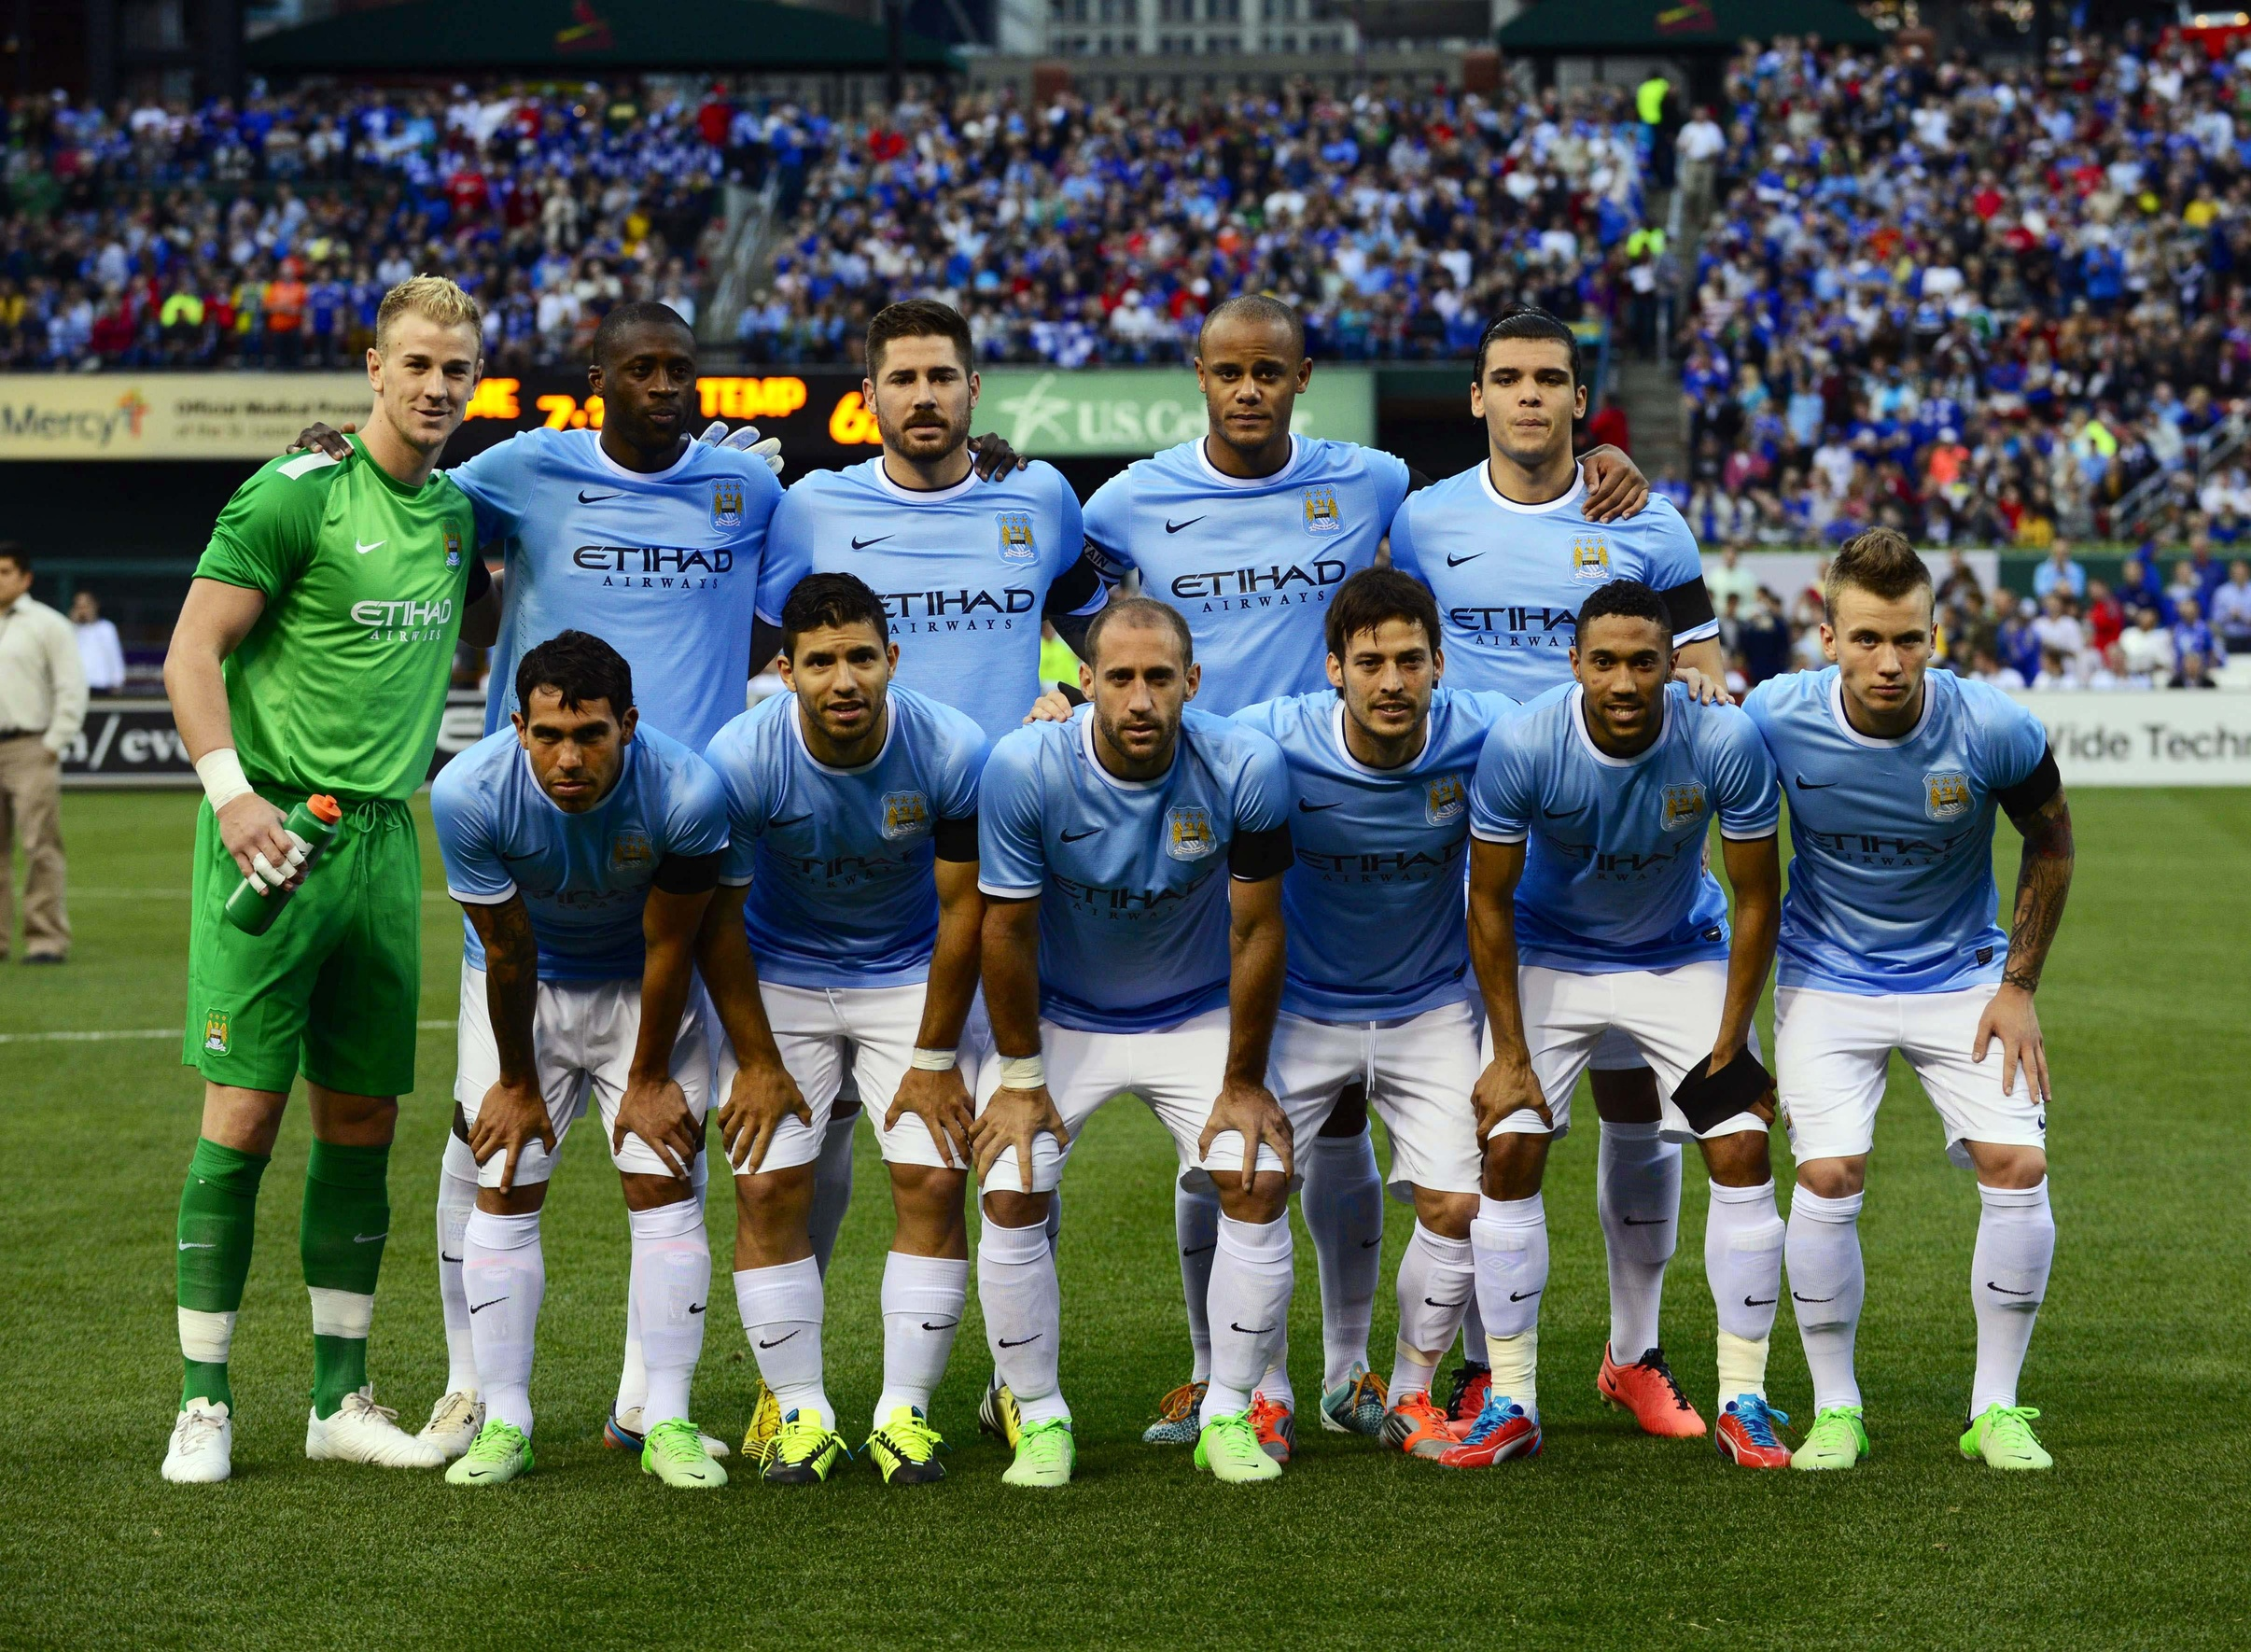 Similar to Chelsea, Manchester City Now Faces Squad Conundrum